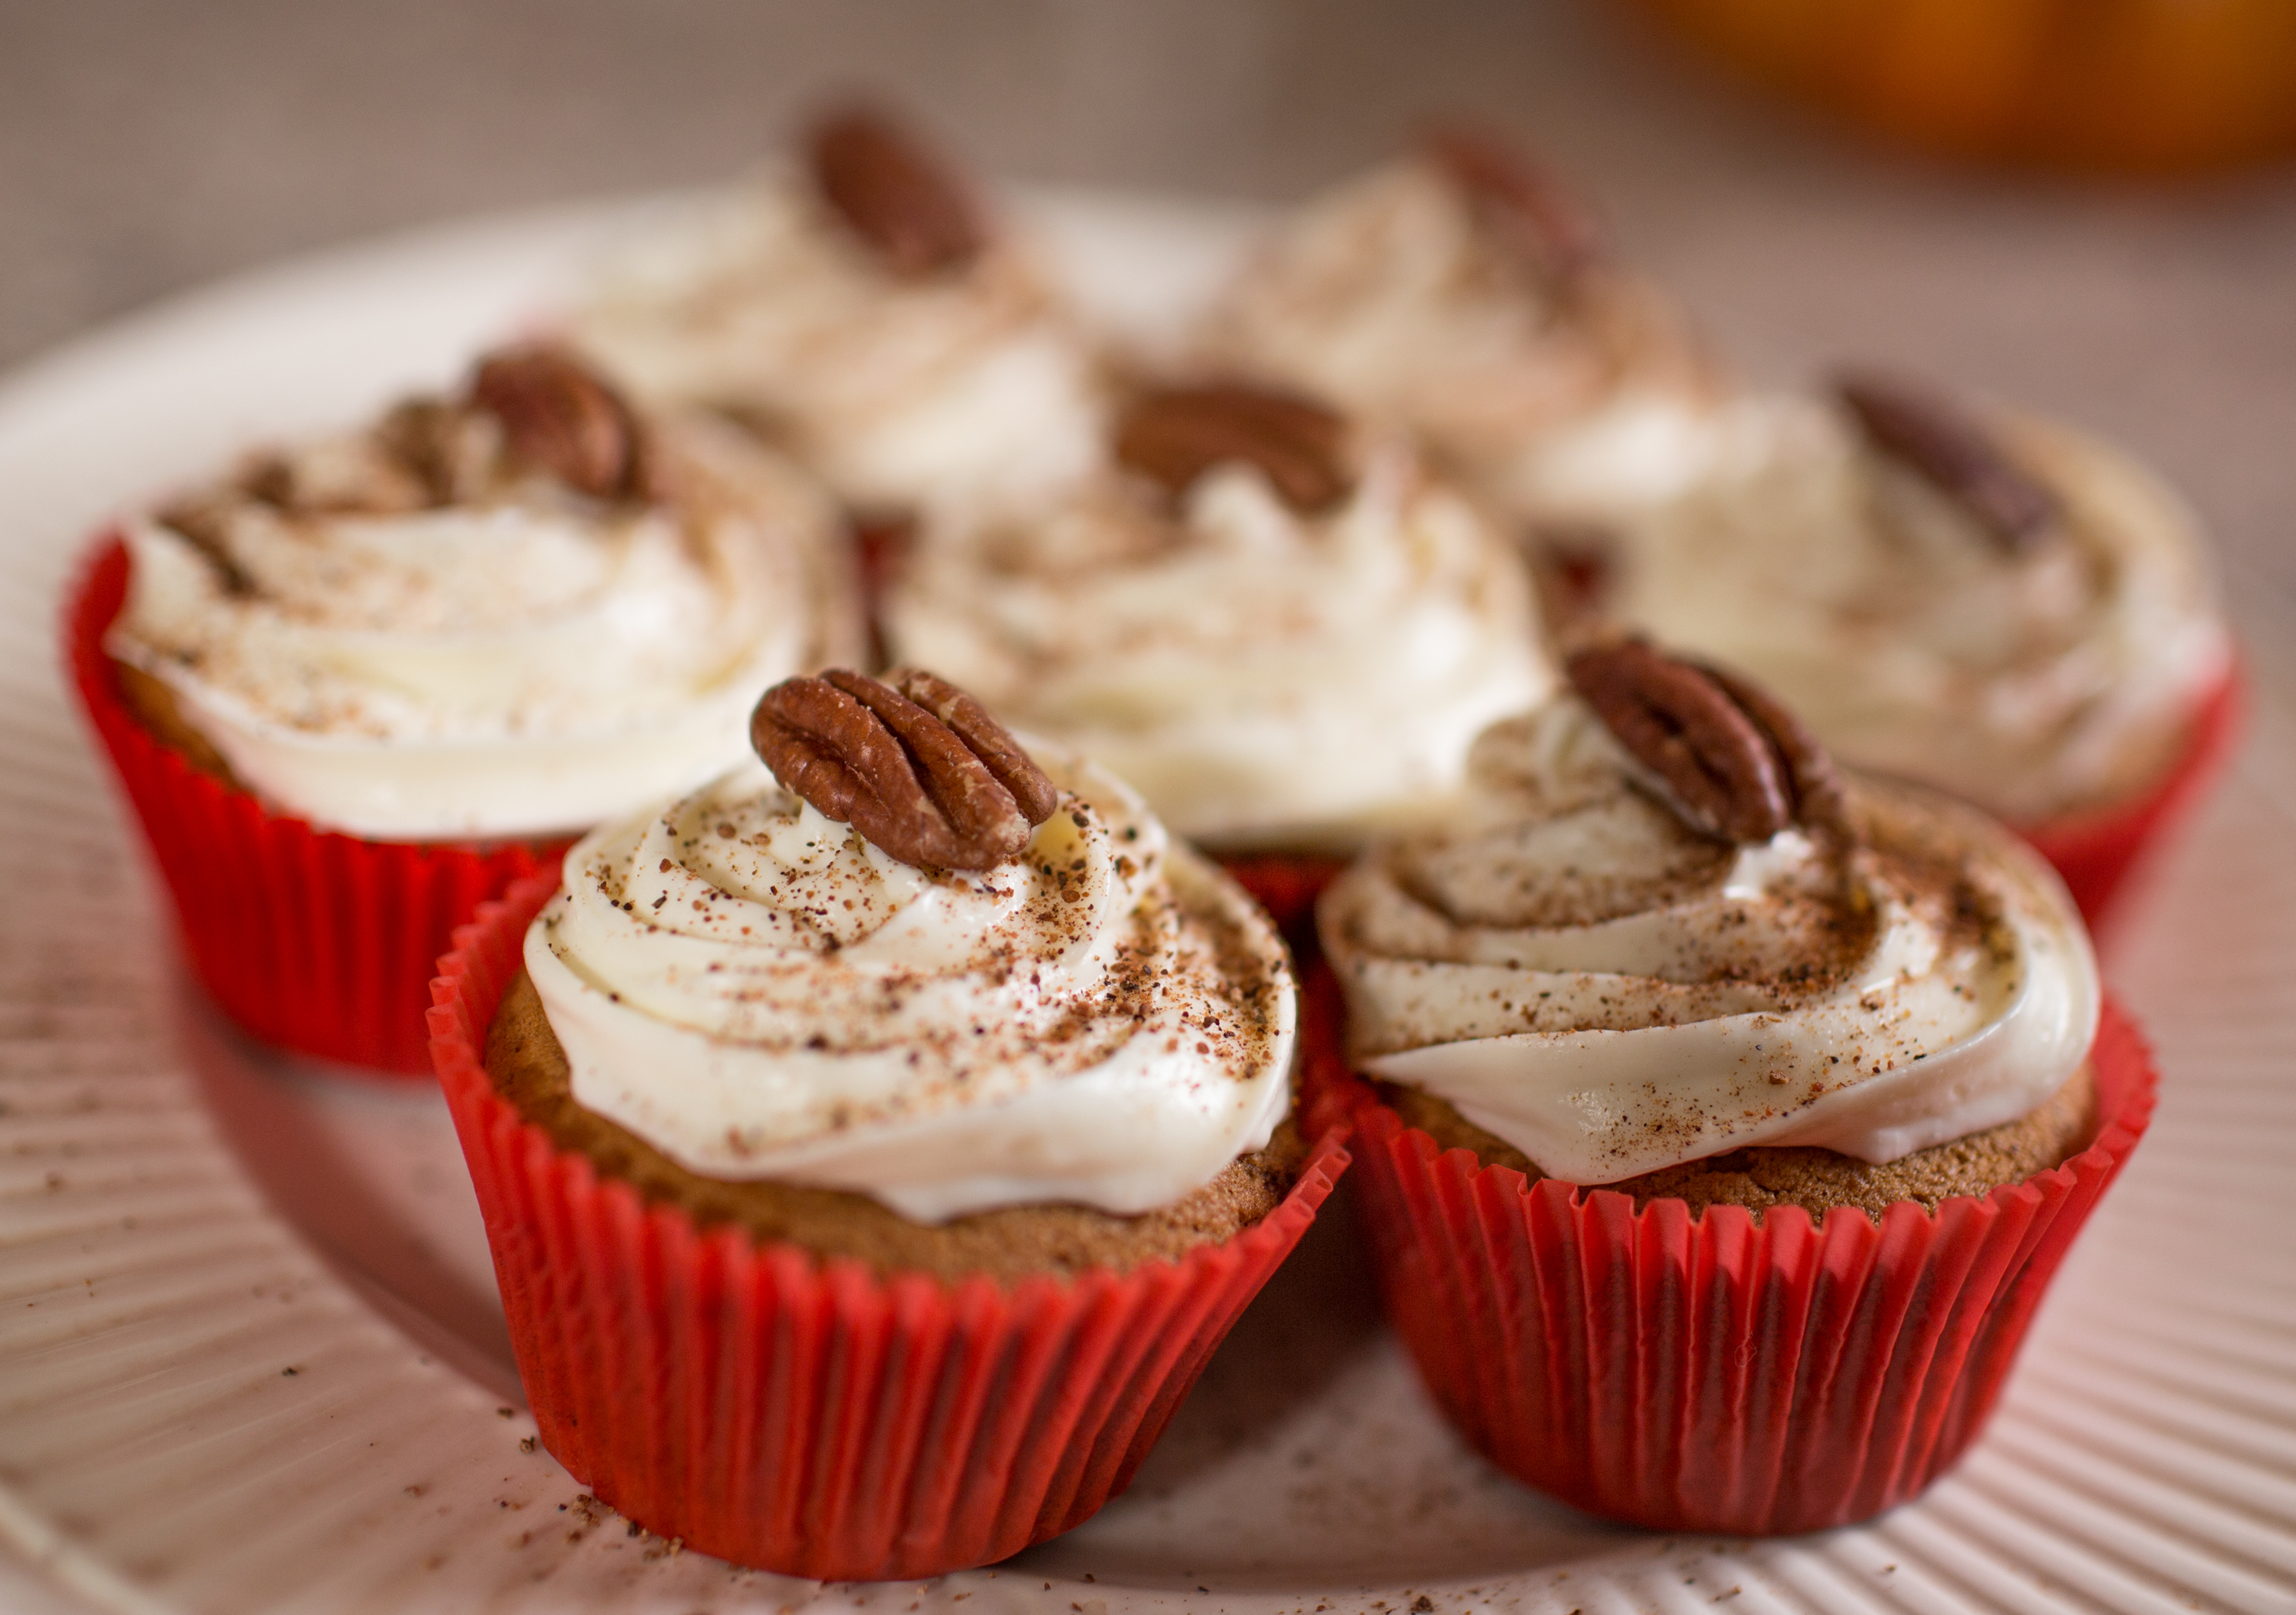 Pumpkin Puree Cupcakes with Pecans